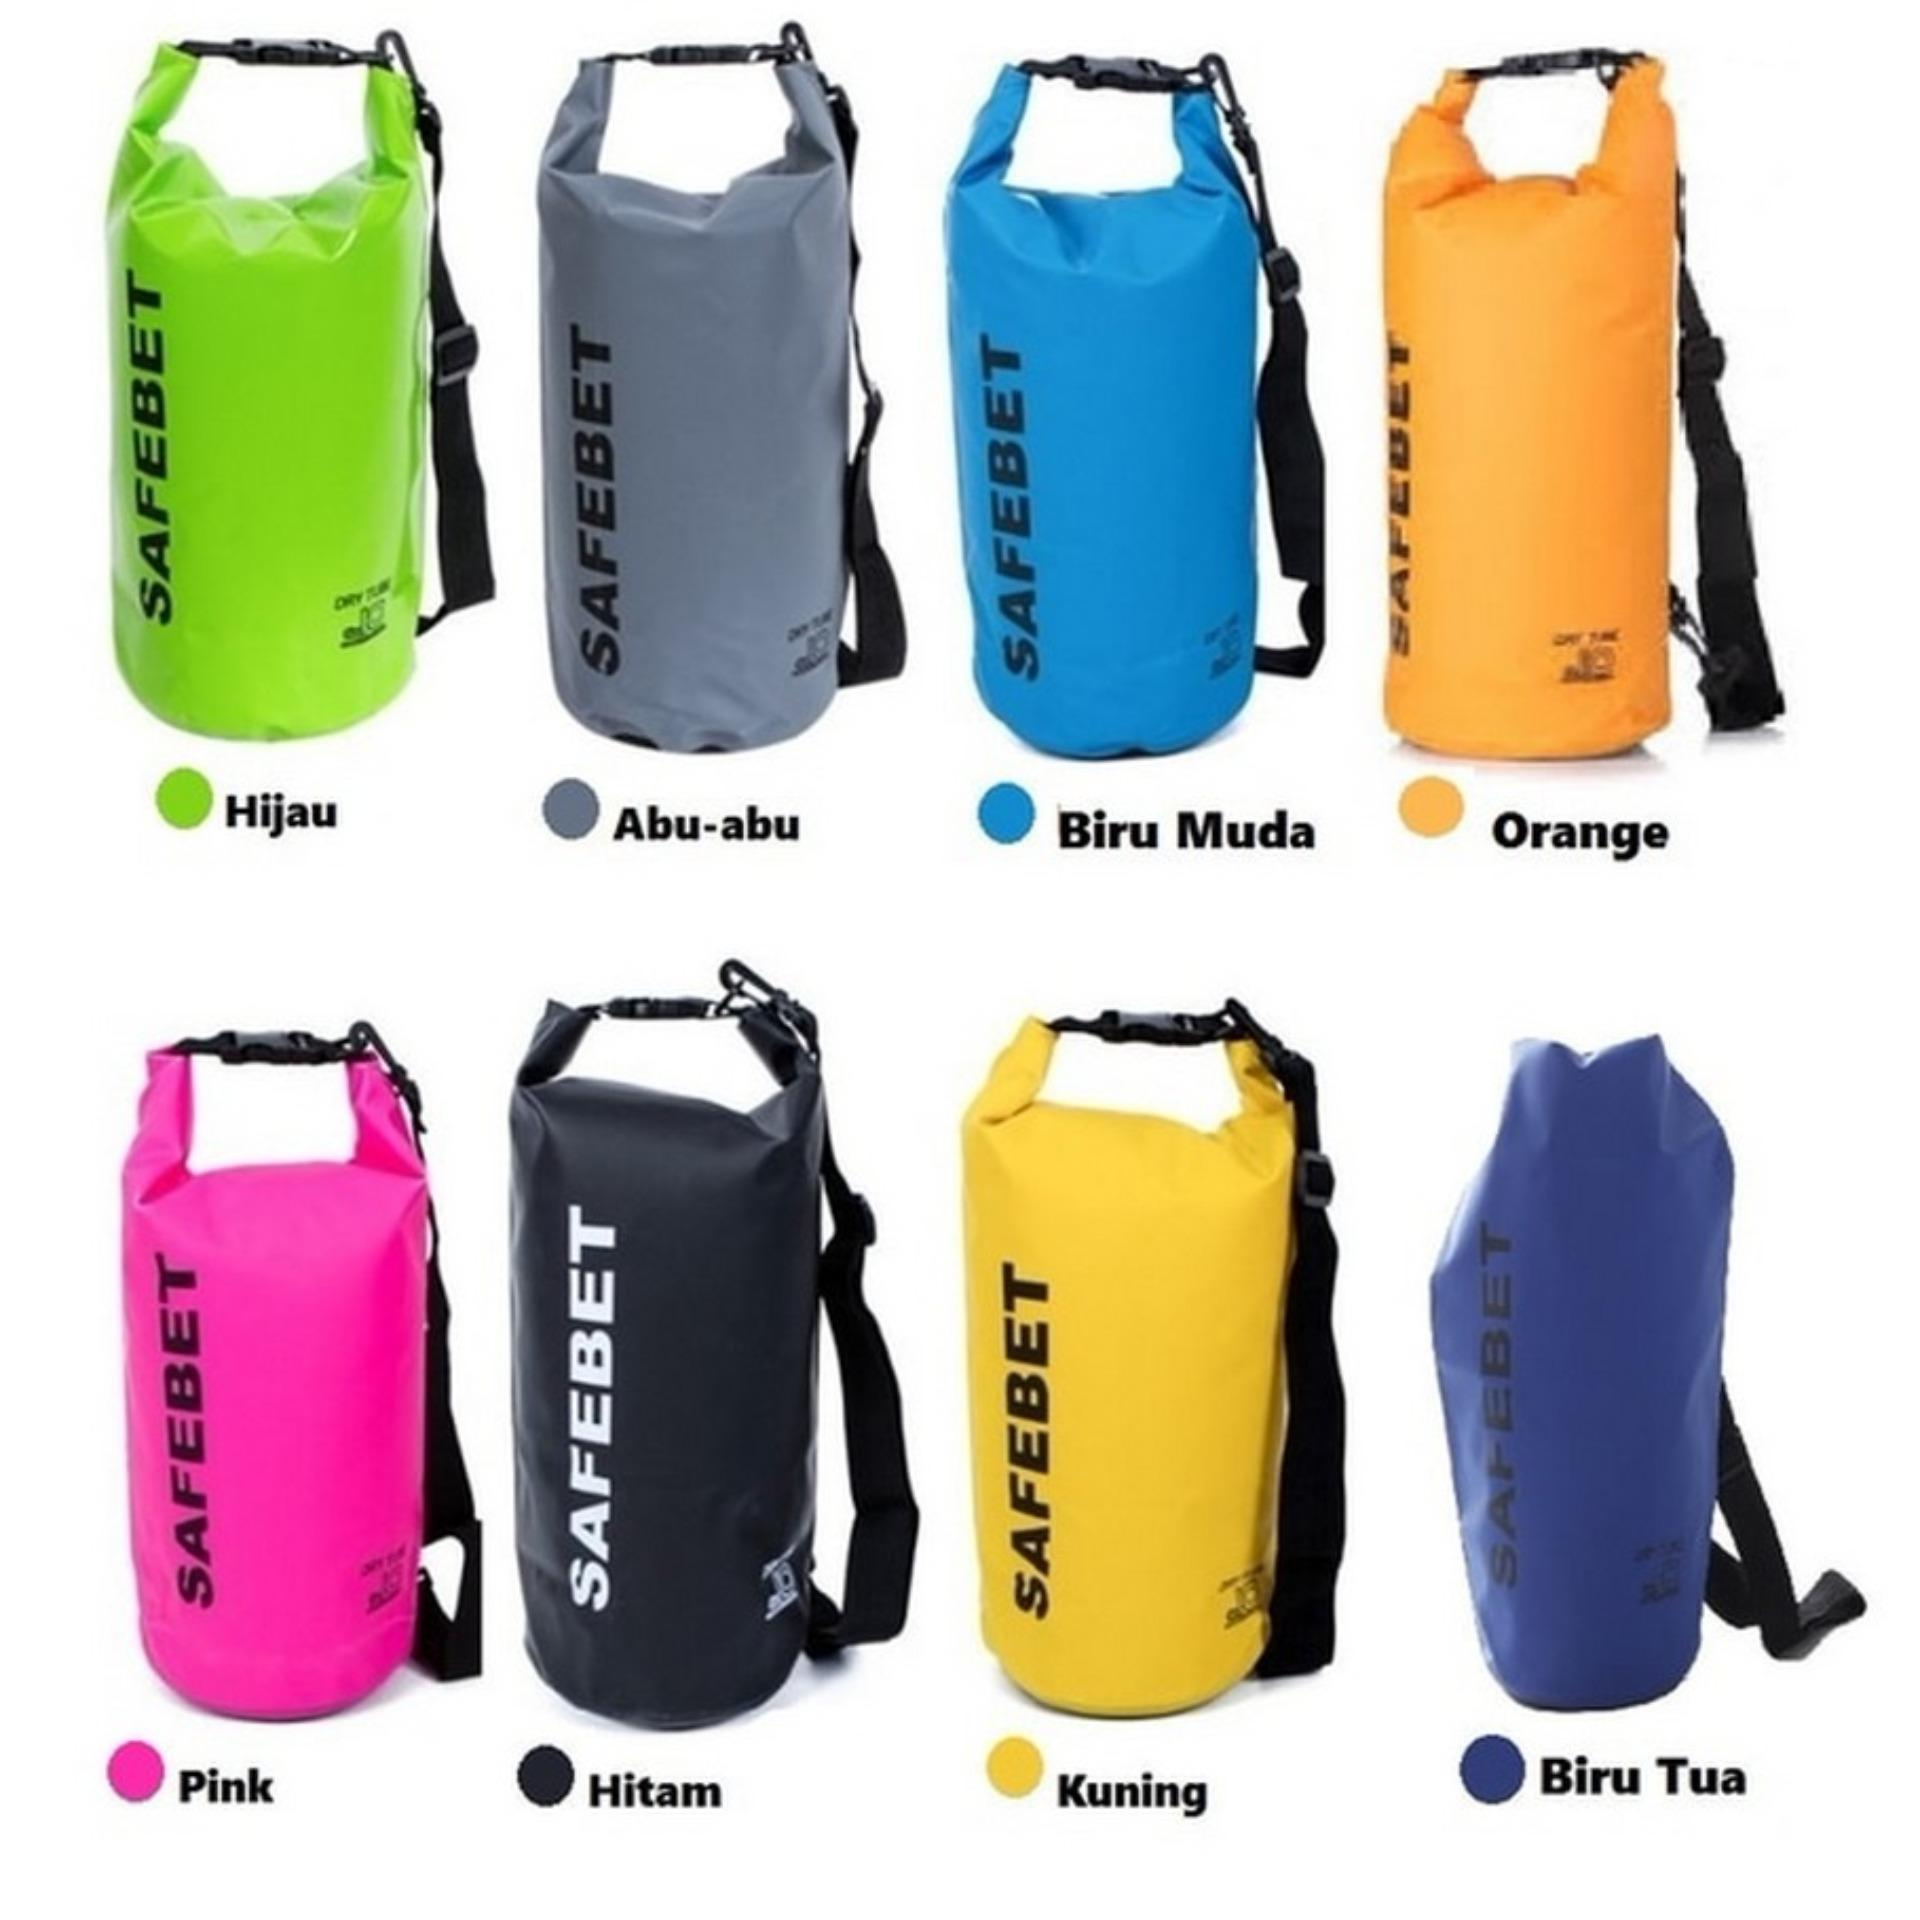 Diskon Toko49 Safebet Waterproof Dry Bag 10 Liter Tas Barang Anti Air Branded